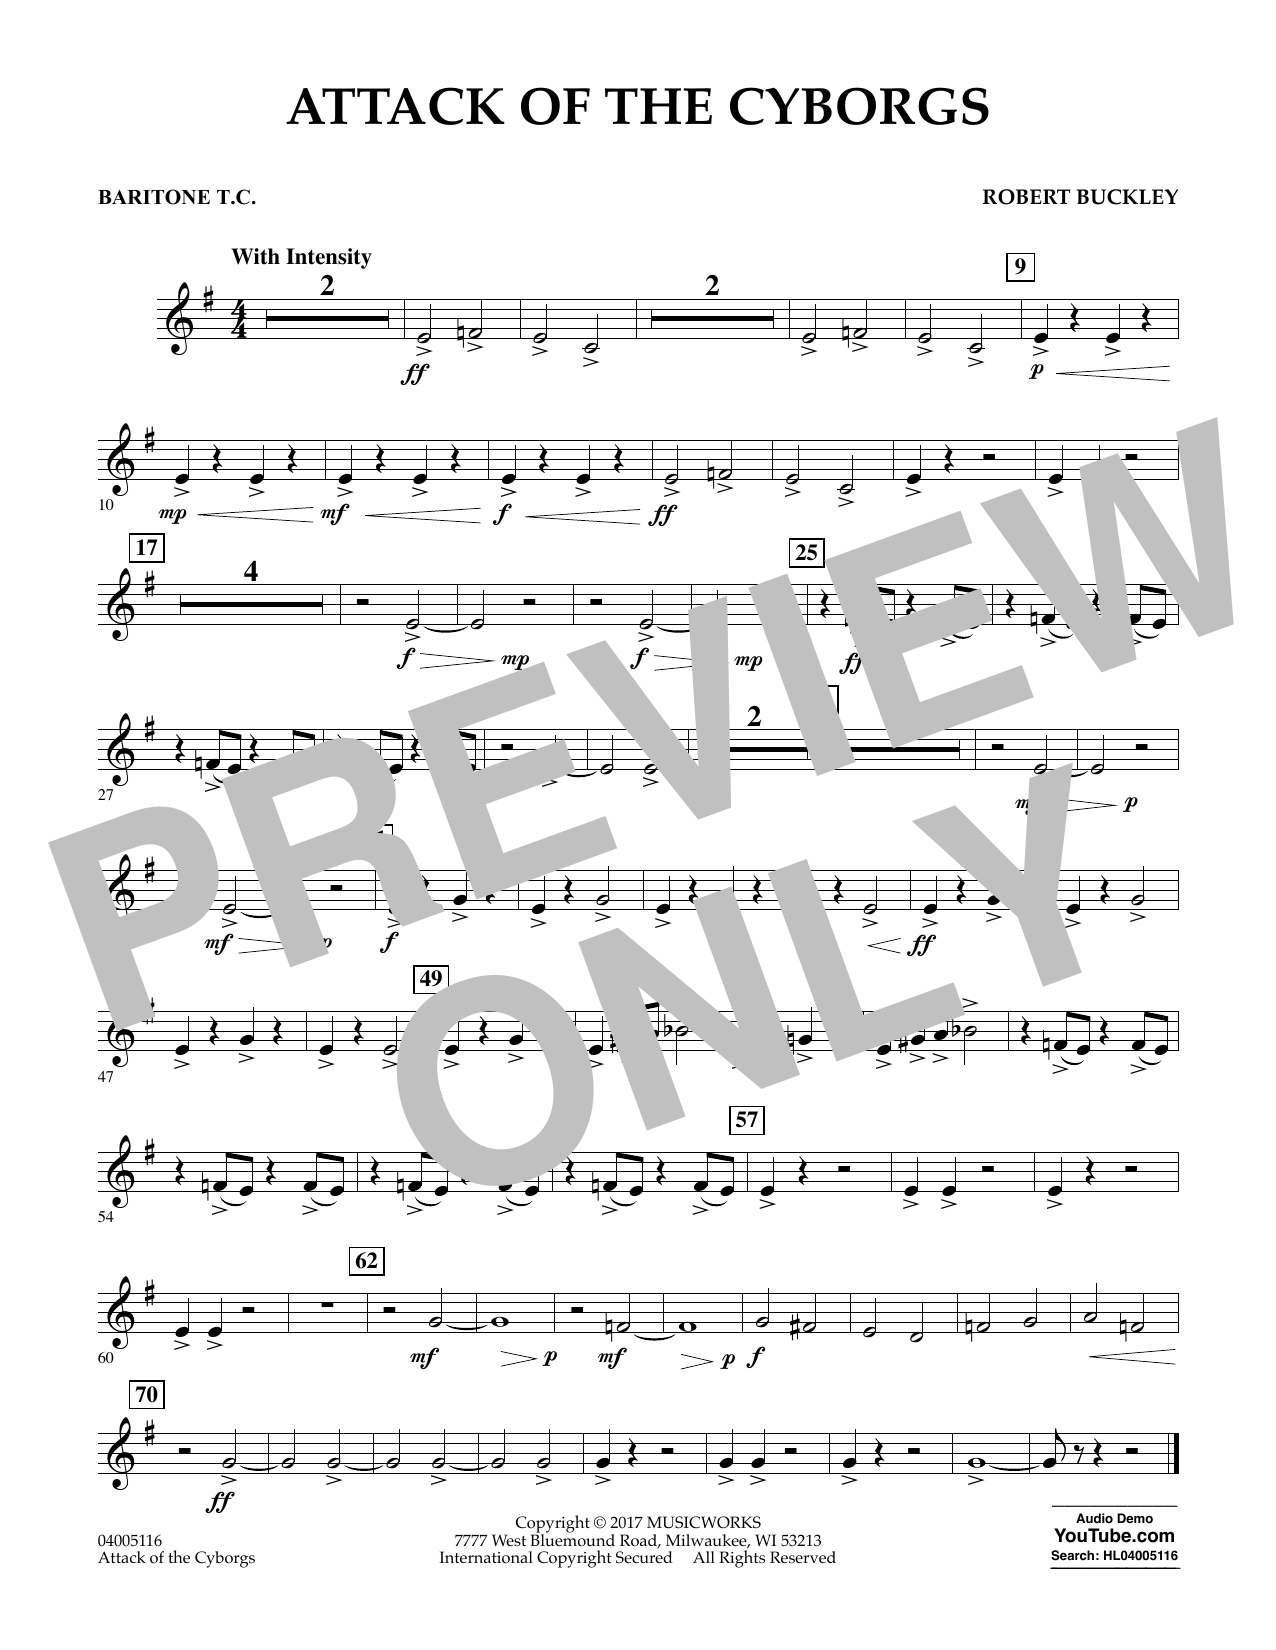 Robert Buckley Attack of the Cyborgs - Baritone T.C. sheet music notes and chords. Download Printable PDF.